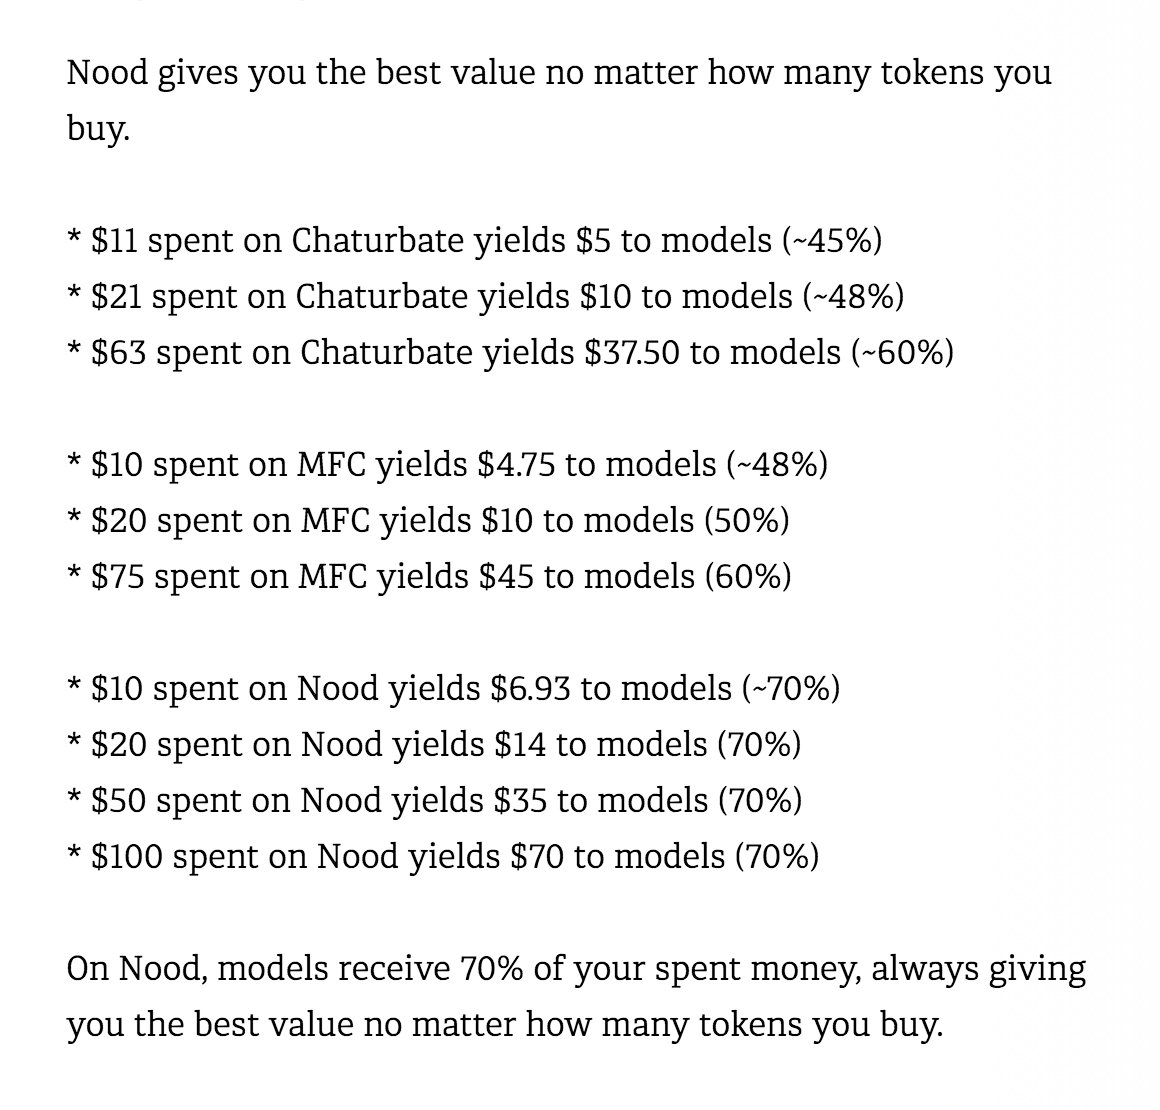 I saw a discussion about the value of tokens on @noodApp compared to other cam sites, and I realize many people get confused with the number of tokens versus their real value. Heres a breakdown!